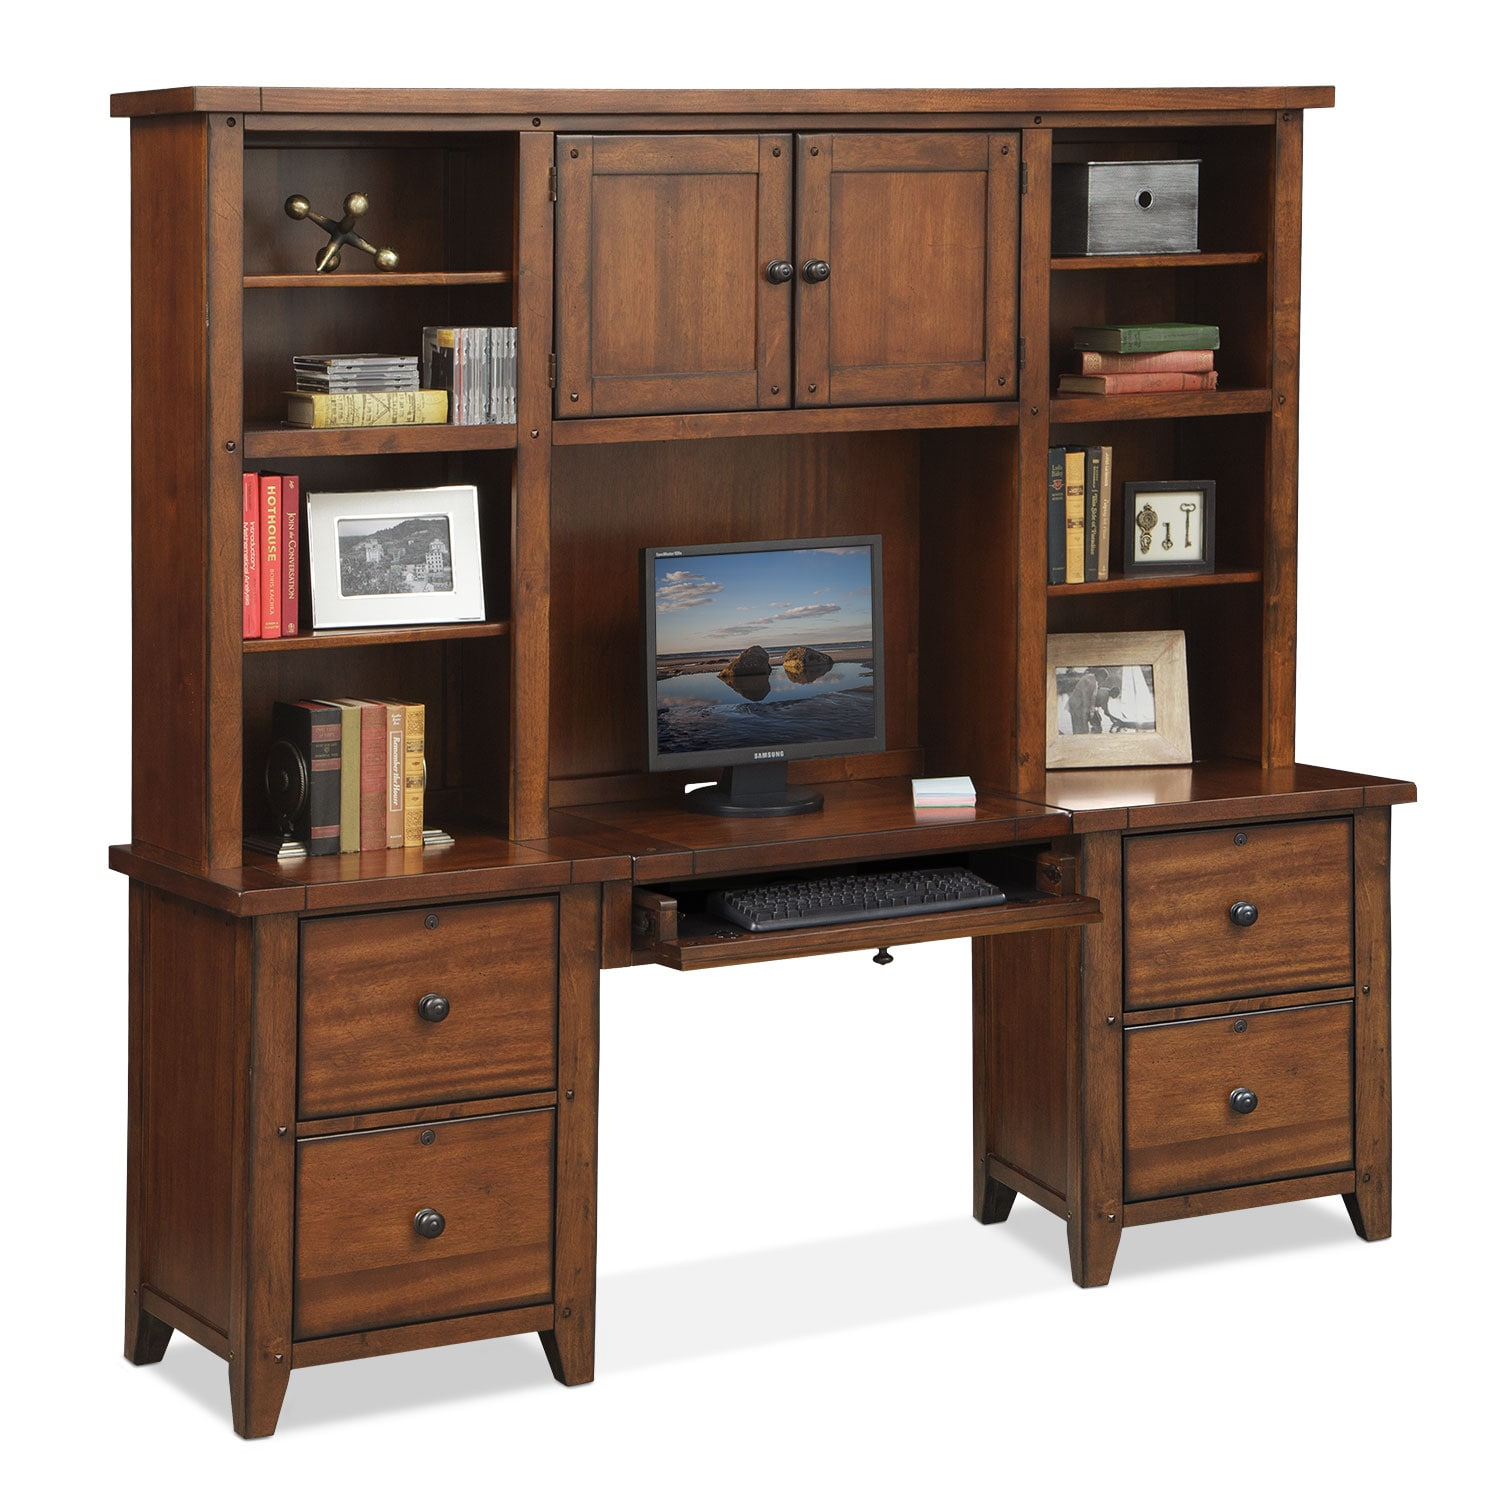 Morgan Executive Desk with Hutch - Brown